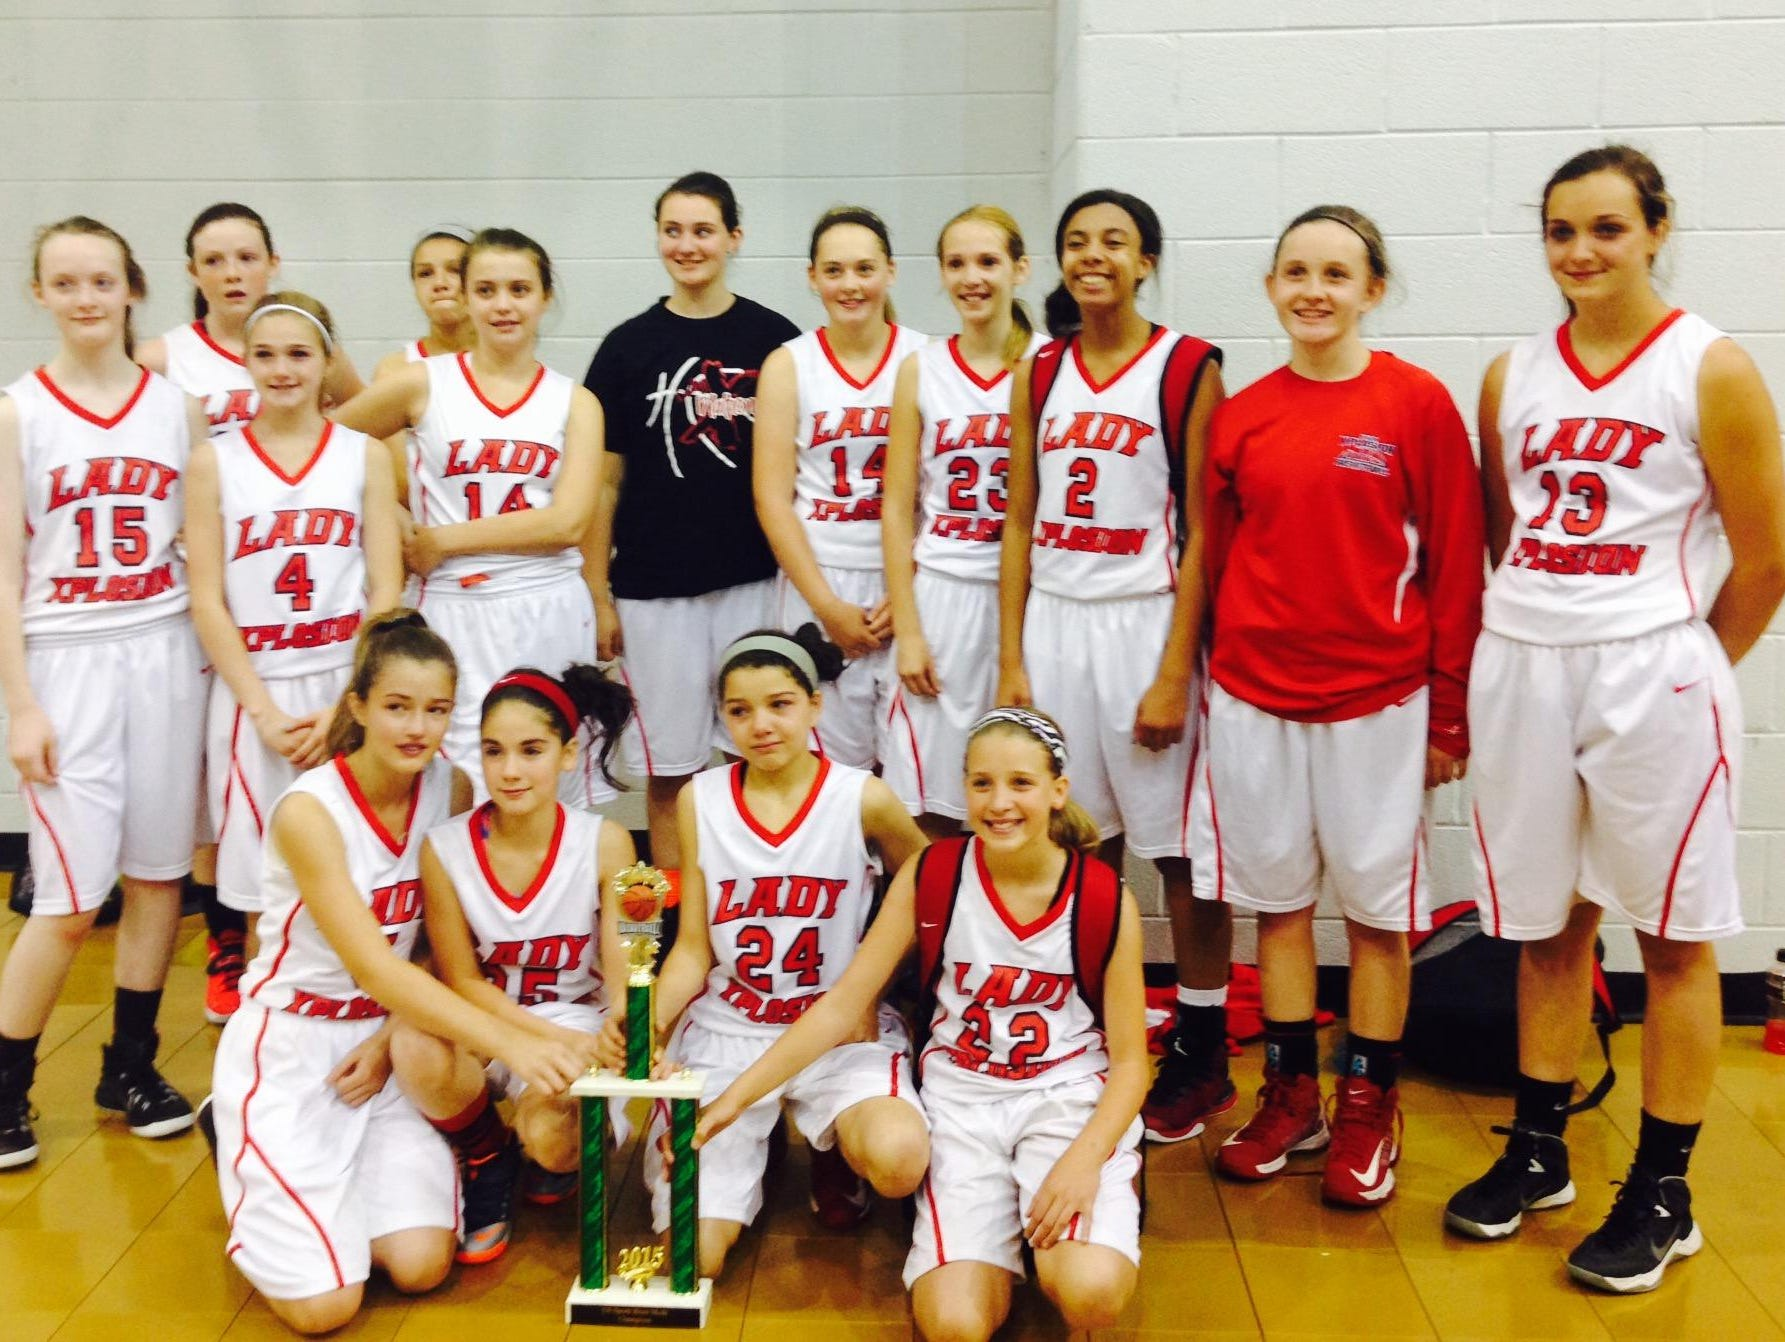 The Lady Xplosion Basketball Club won a pair of championships at this past weekend's Hoops for a Cure tournament in Greensboro.